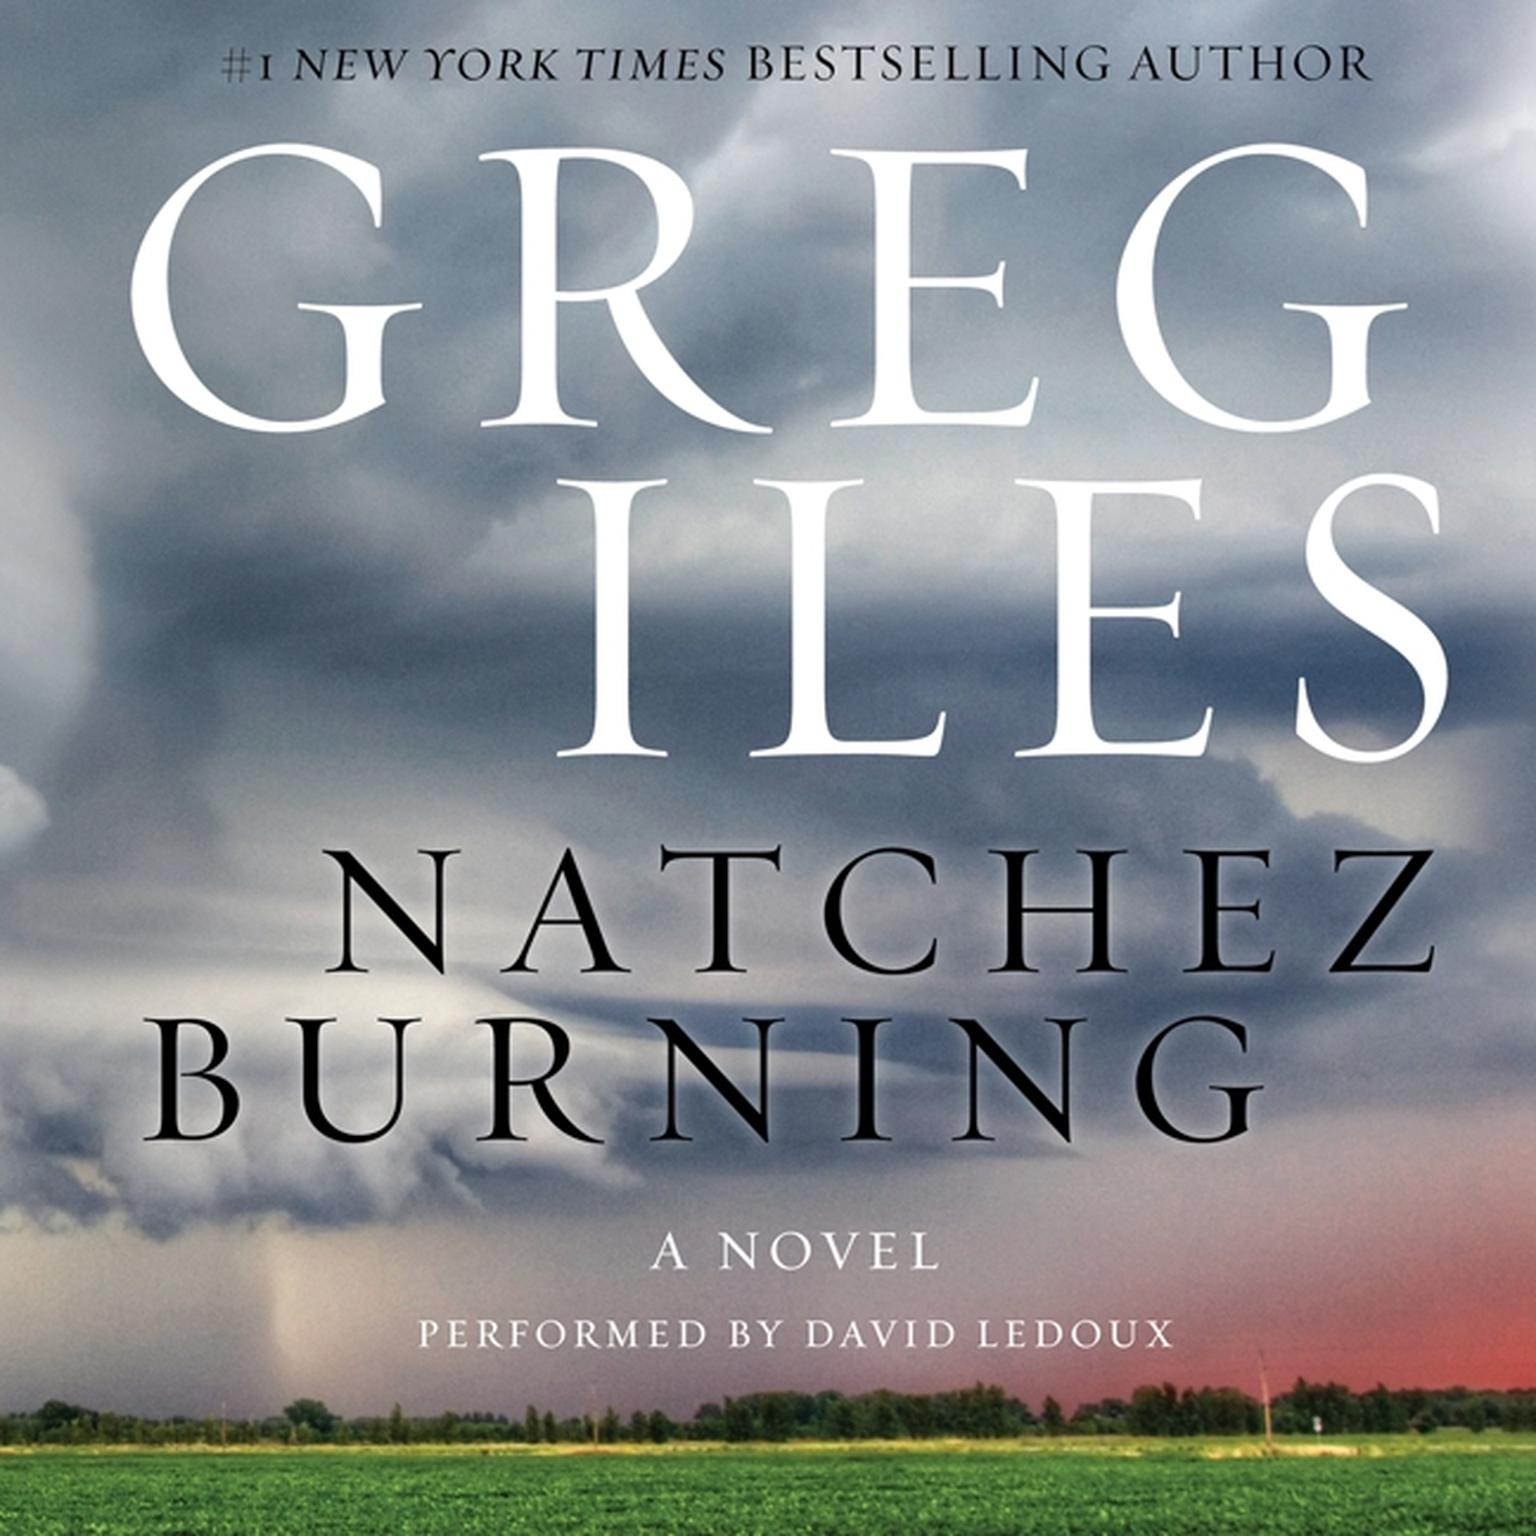 Printable Natchez Burning: A Novel Audiobook Cover Art